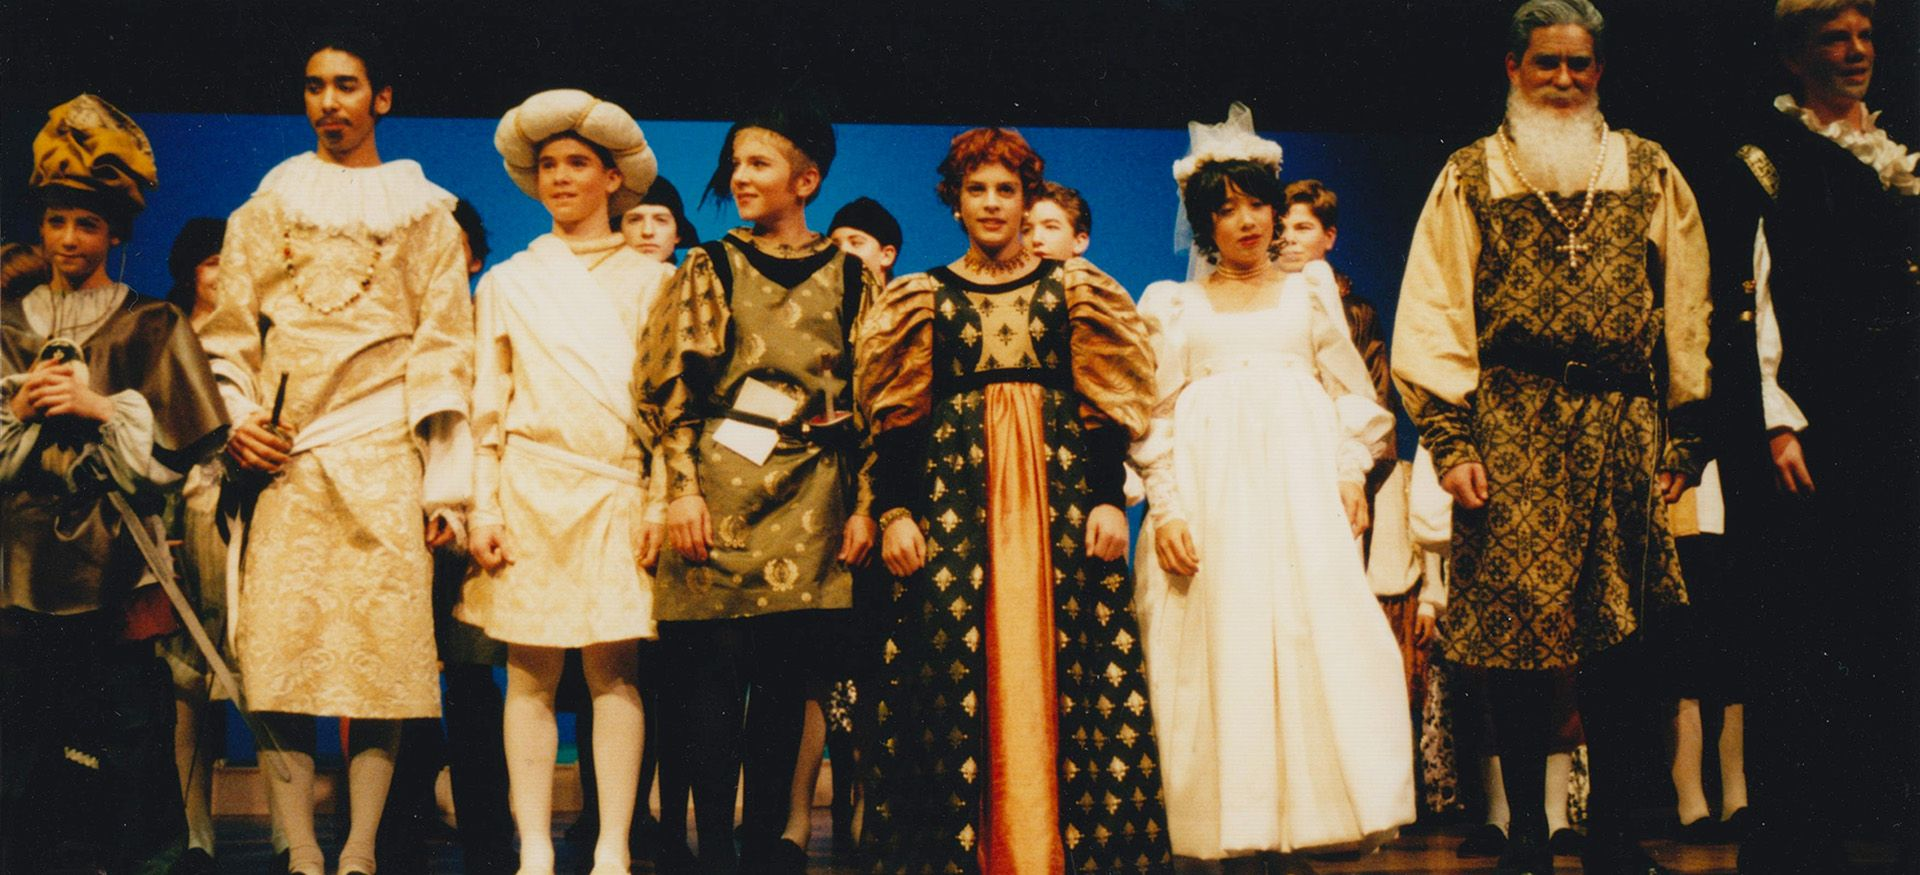 2001, Much Ado About Nothing